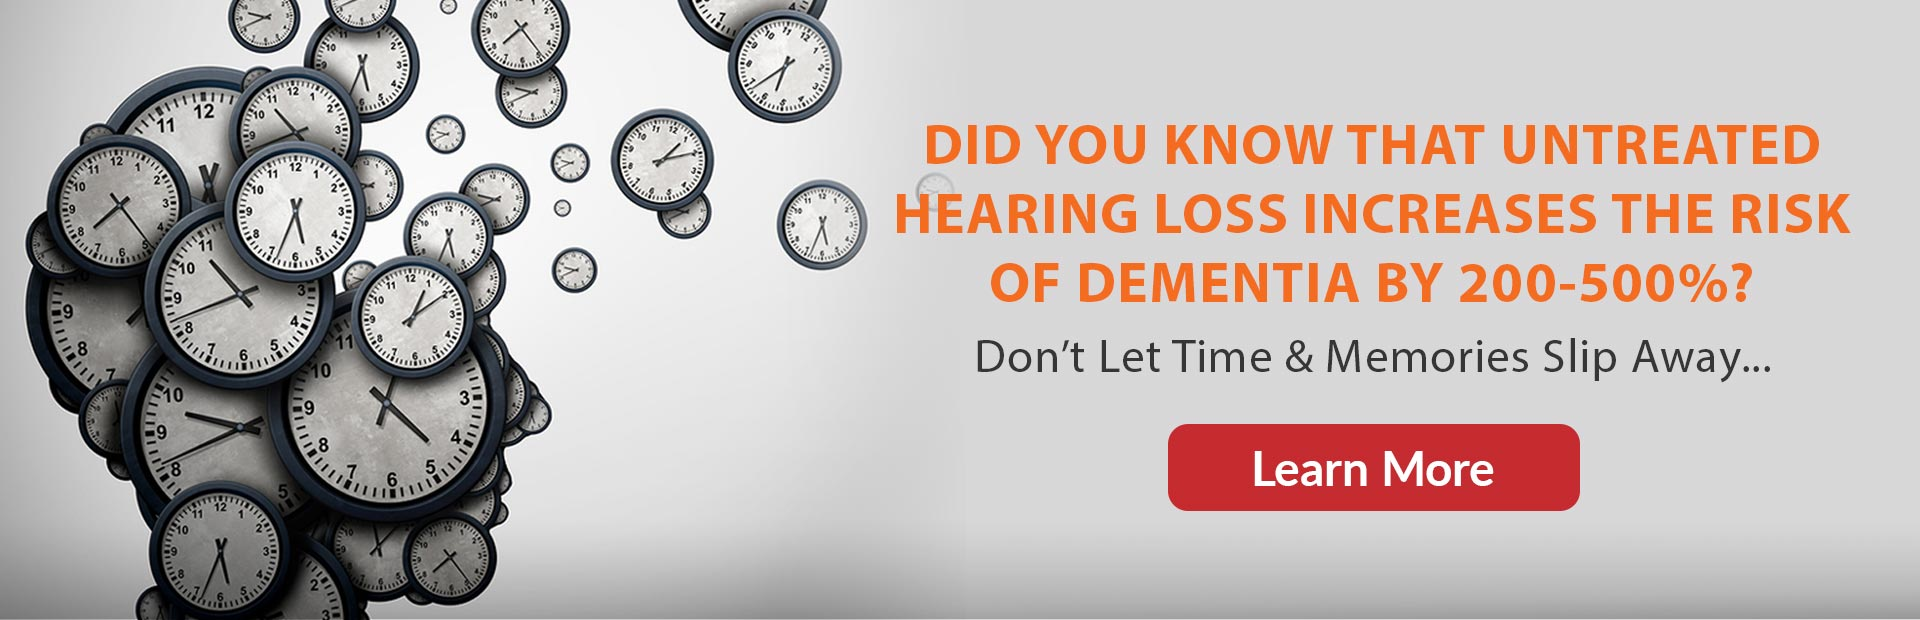 sherman oaks ca hearing loss & dementia